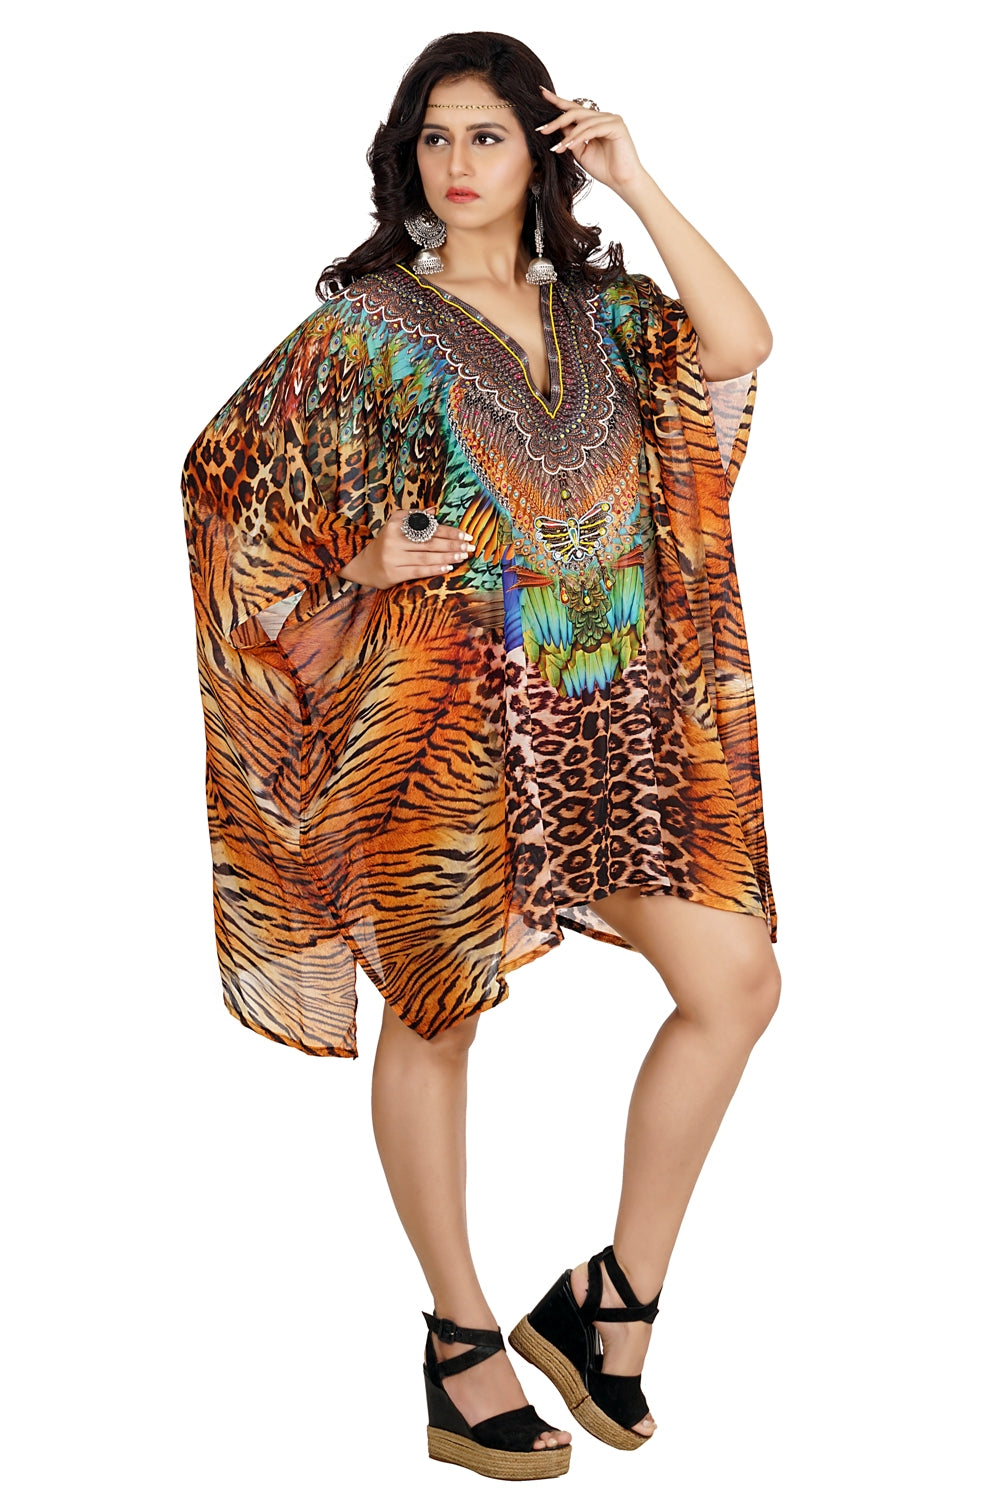 Fascinated Cheetah printed Short Silk Kaftan decked with unblemished beads and Feathers silk caftan tunic - Silk kaftan